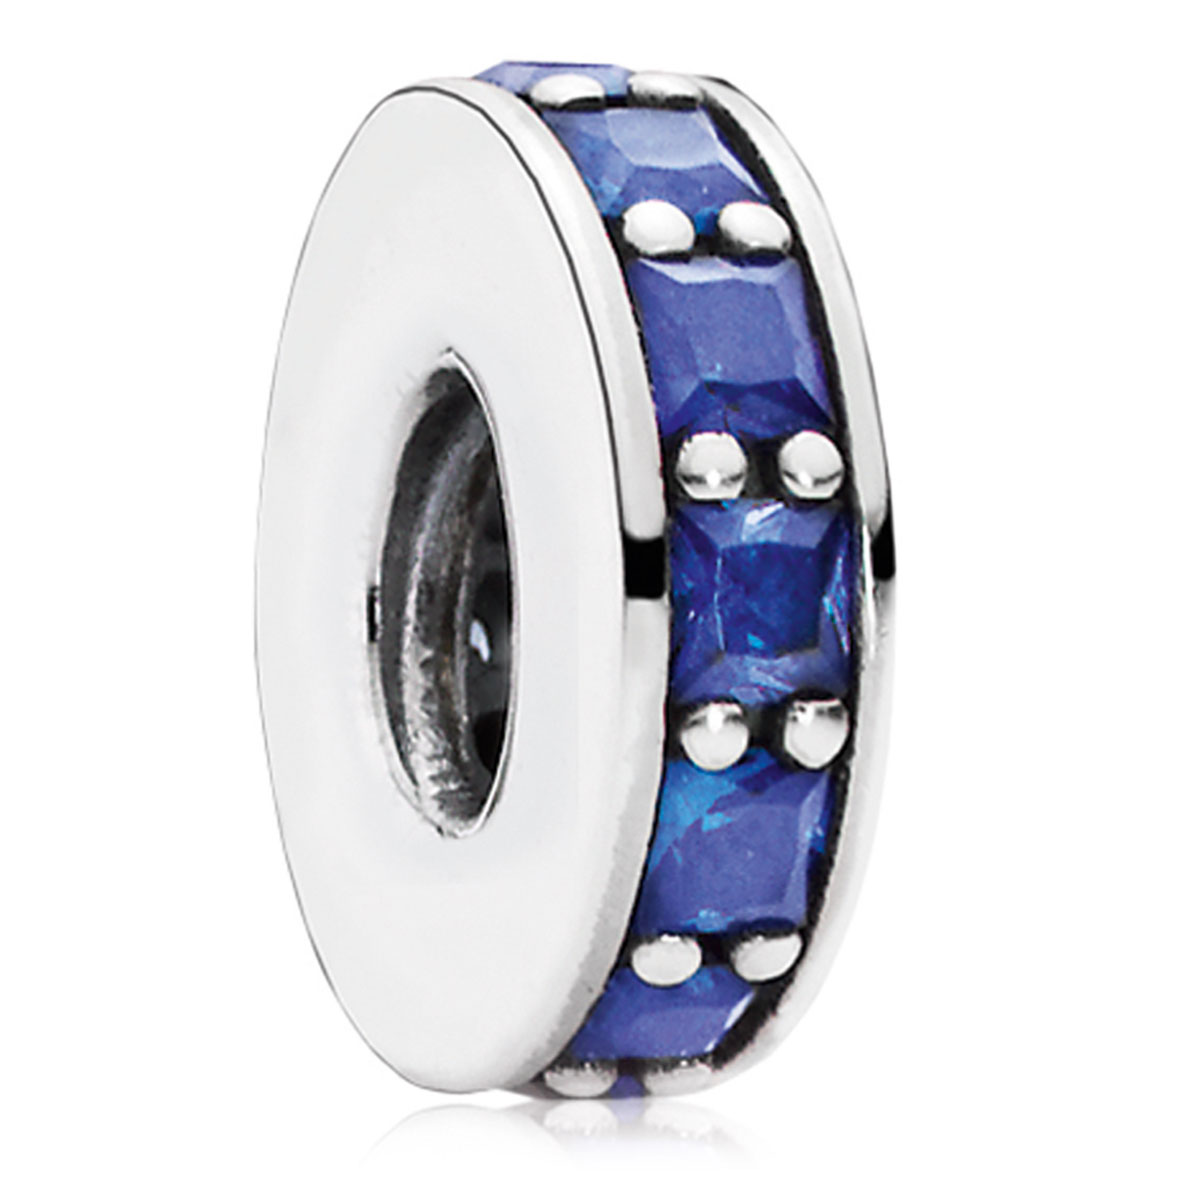 802-3073-PANDORA Eternity with Royal Blue Crystal Spacer